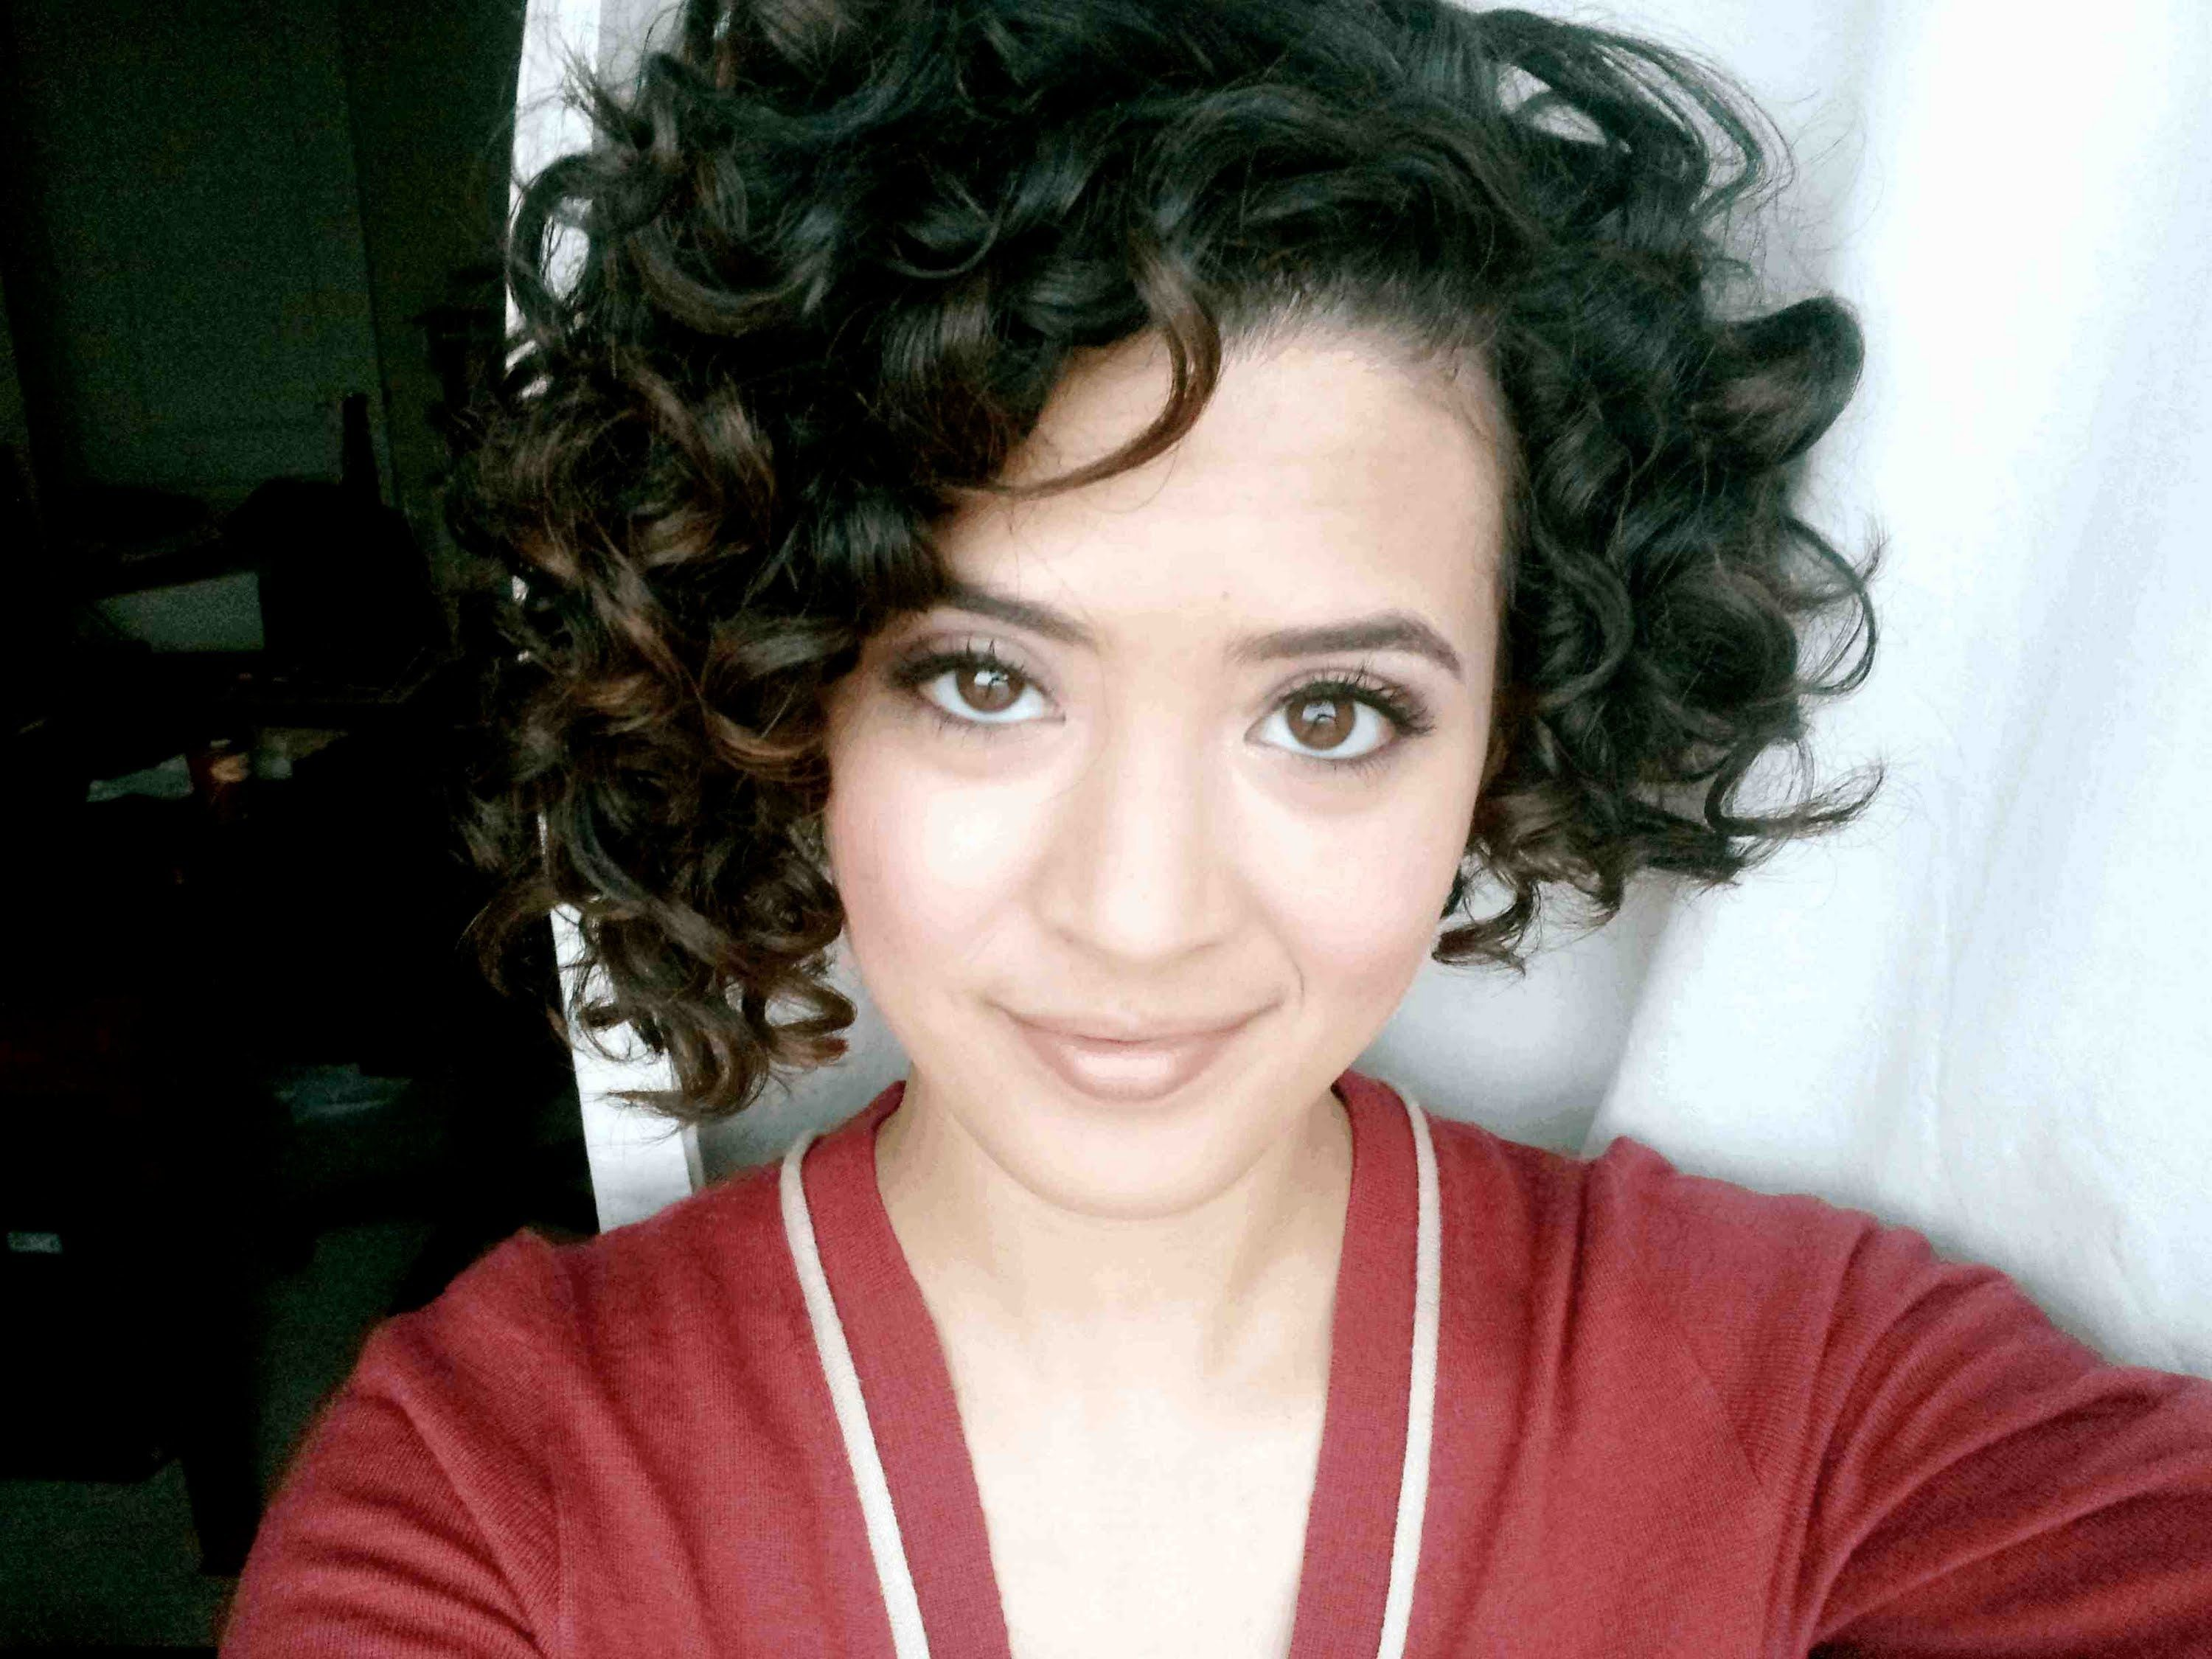 Great Curly Hair Routine And Her Hair Is ADORABLE! LOVE IT